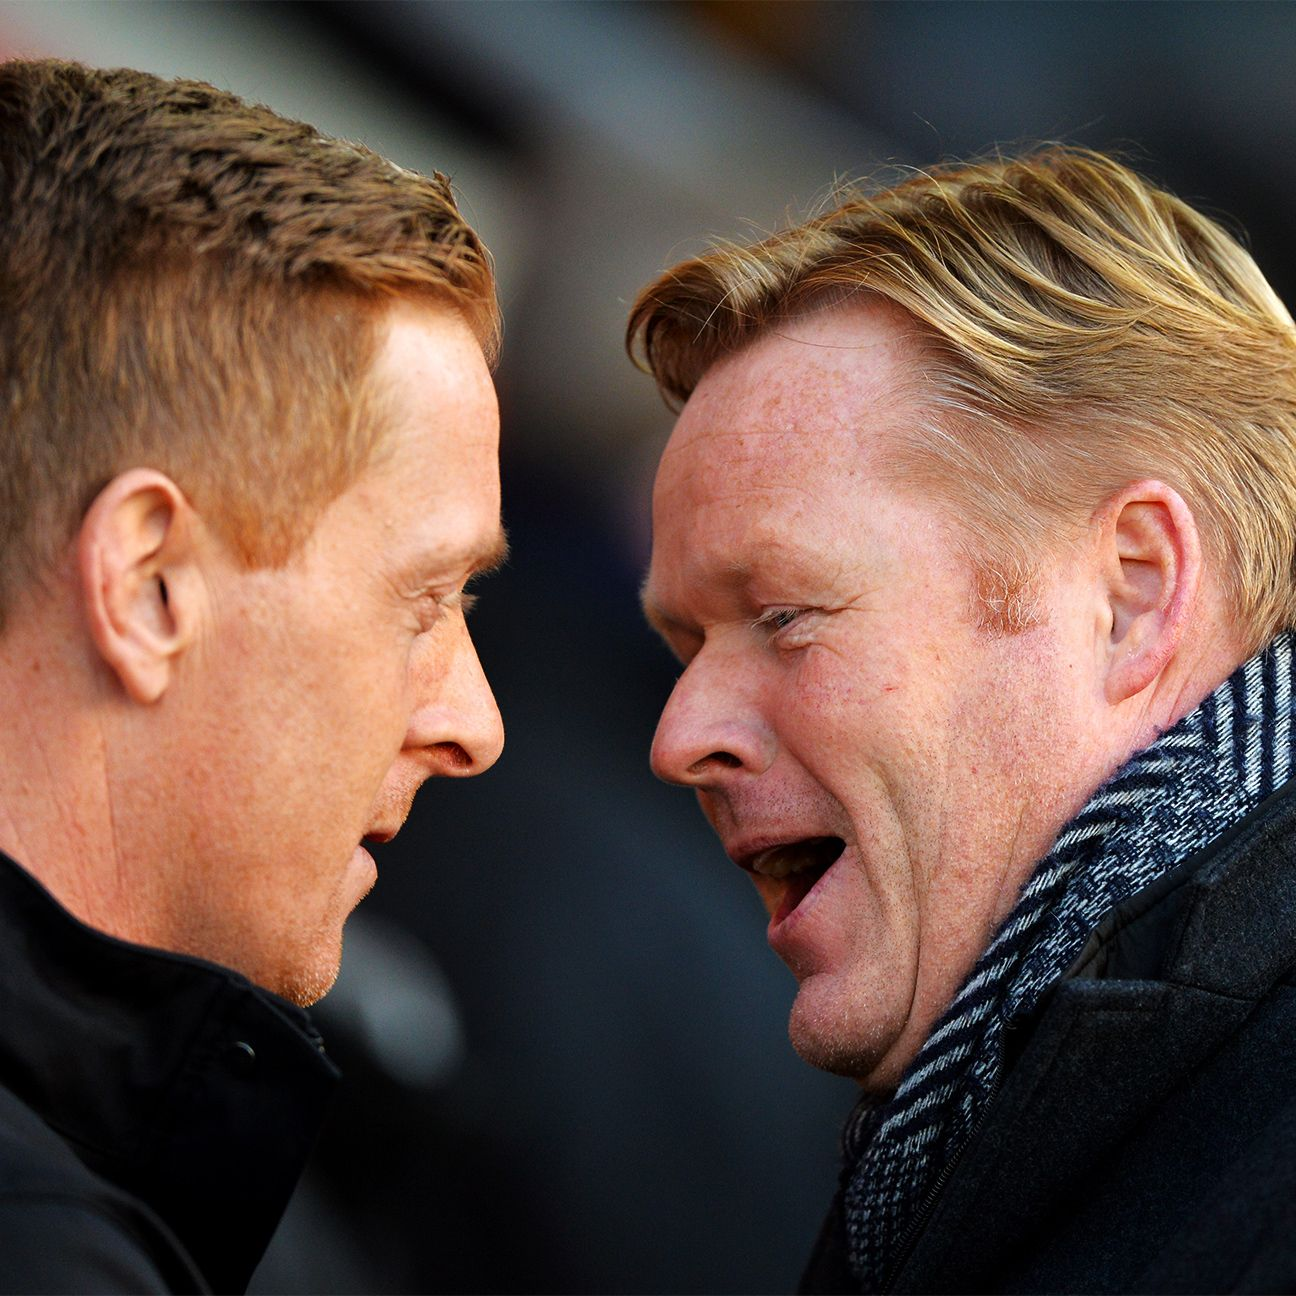 Swansea boss Garry Monk, left, and Southampton manager Ronald Koeman, right, have their respective teams playing attractive football.